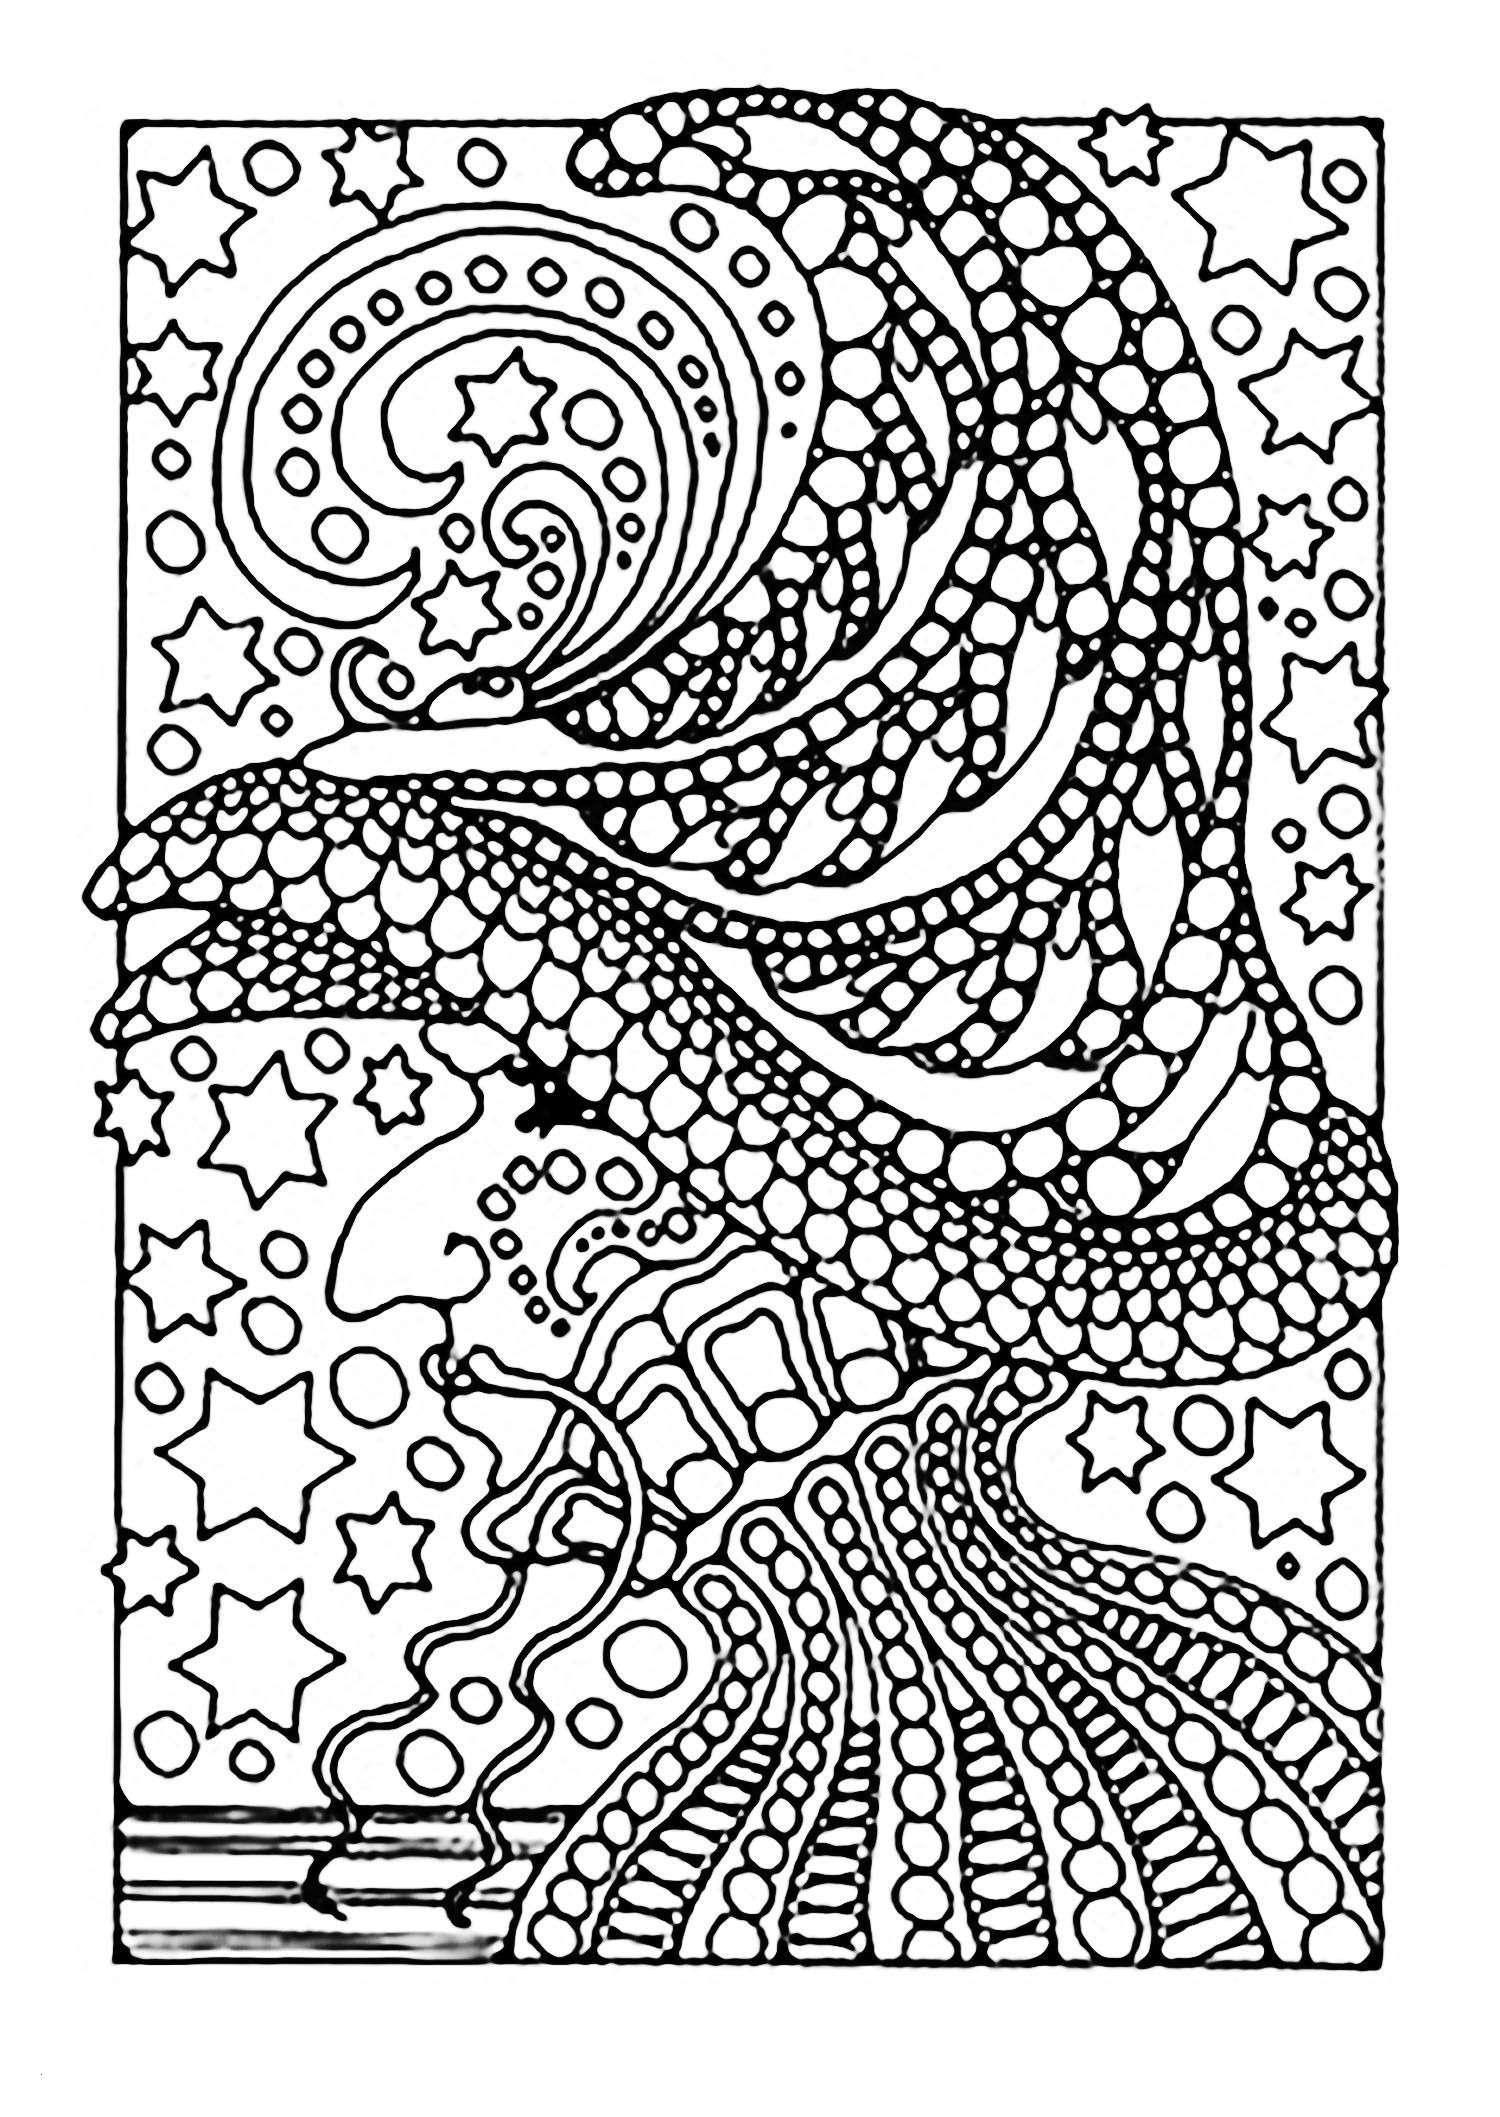 Music Note Coloring Pages  Download 15r - To print for your project